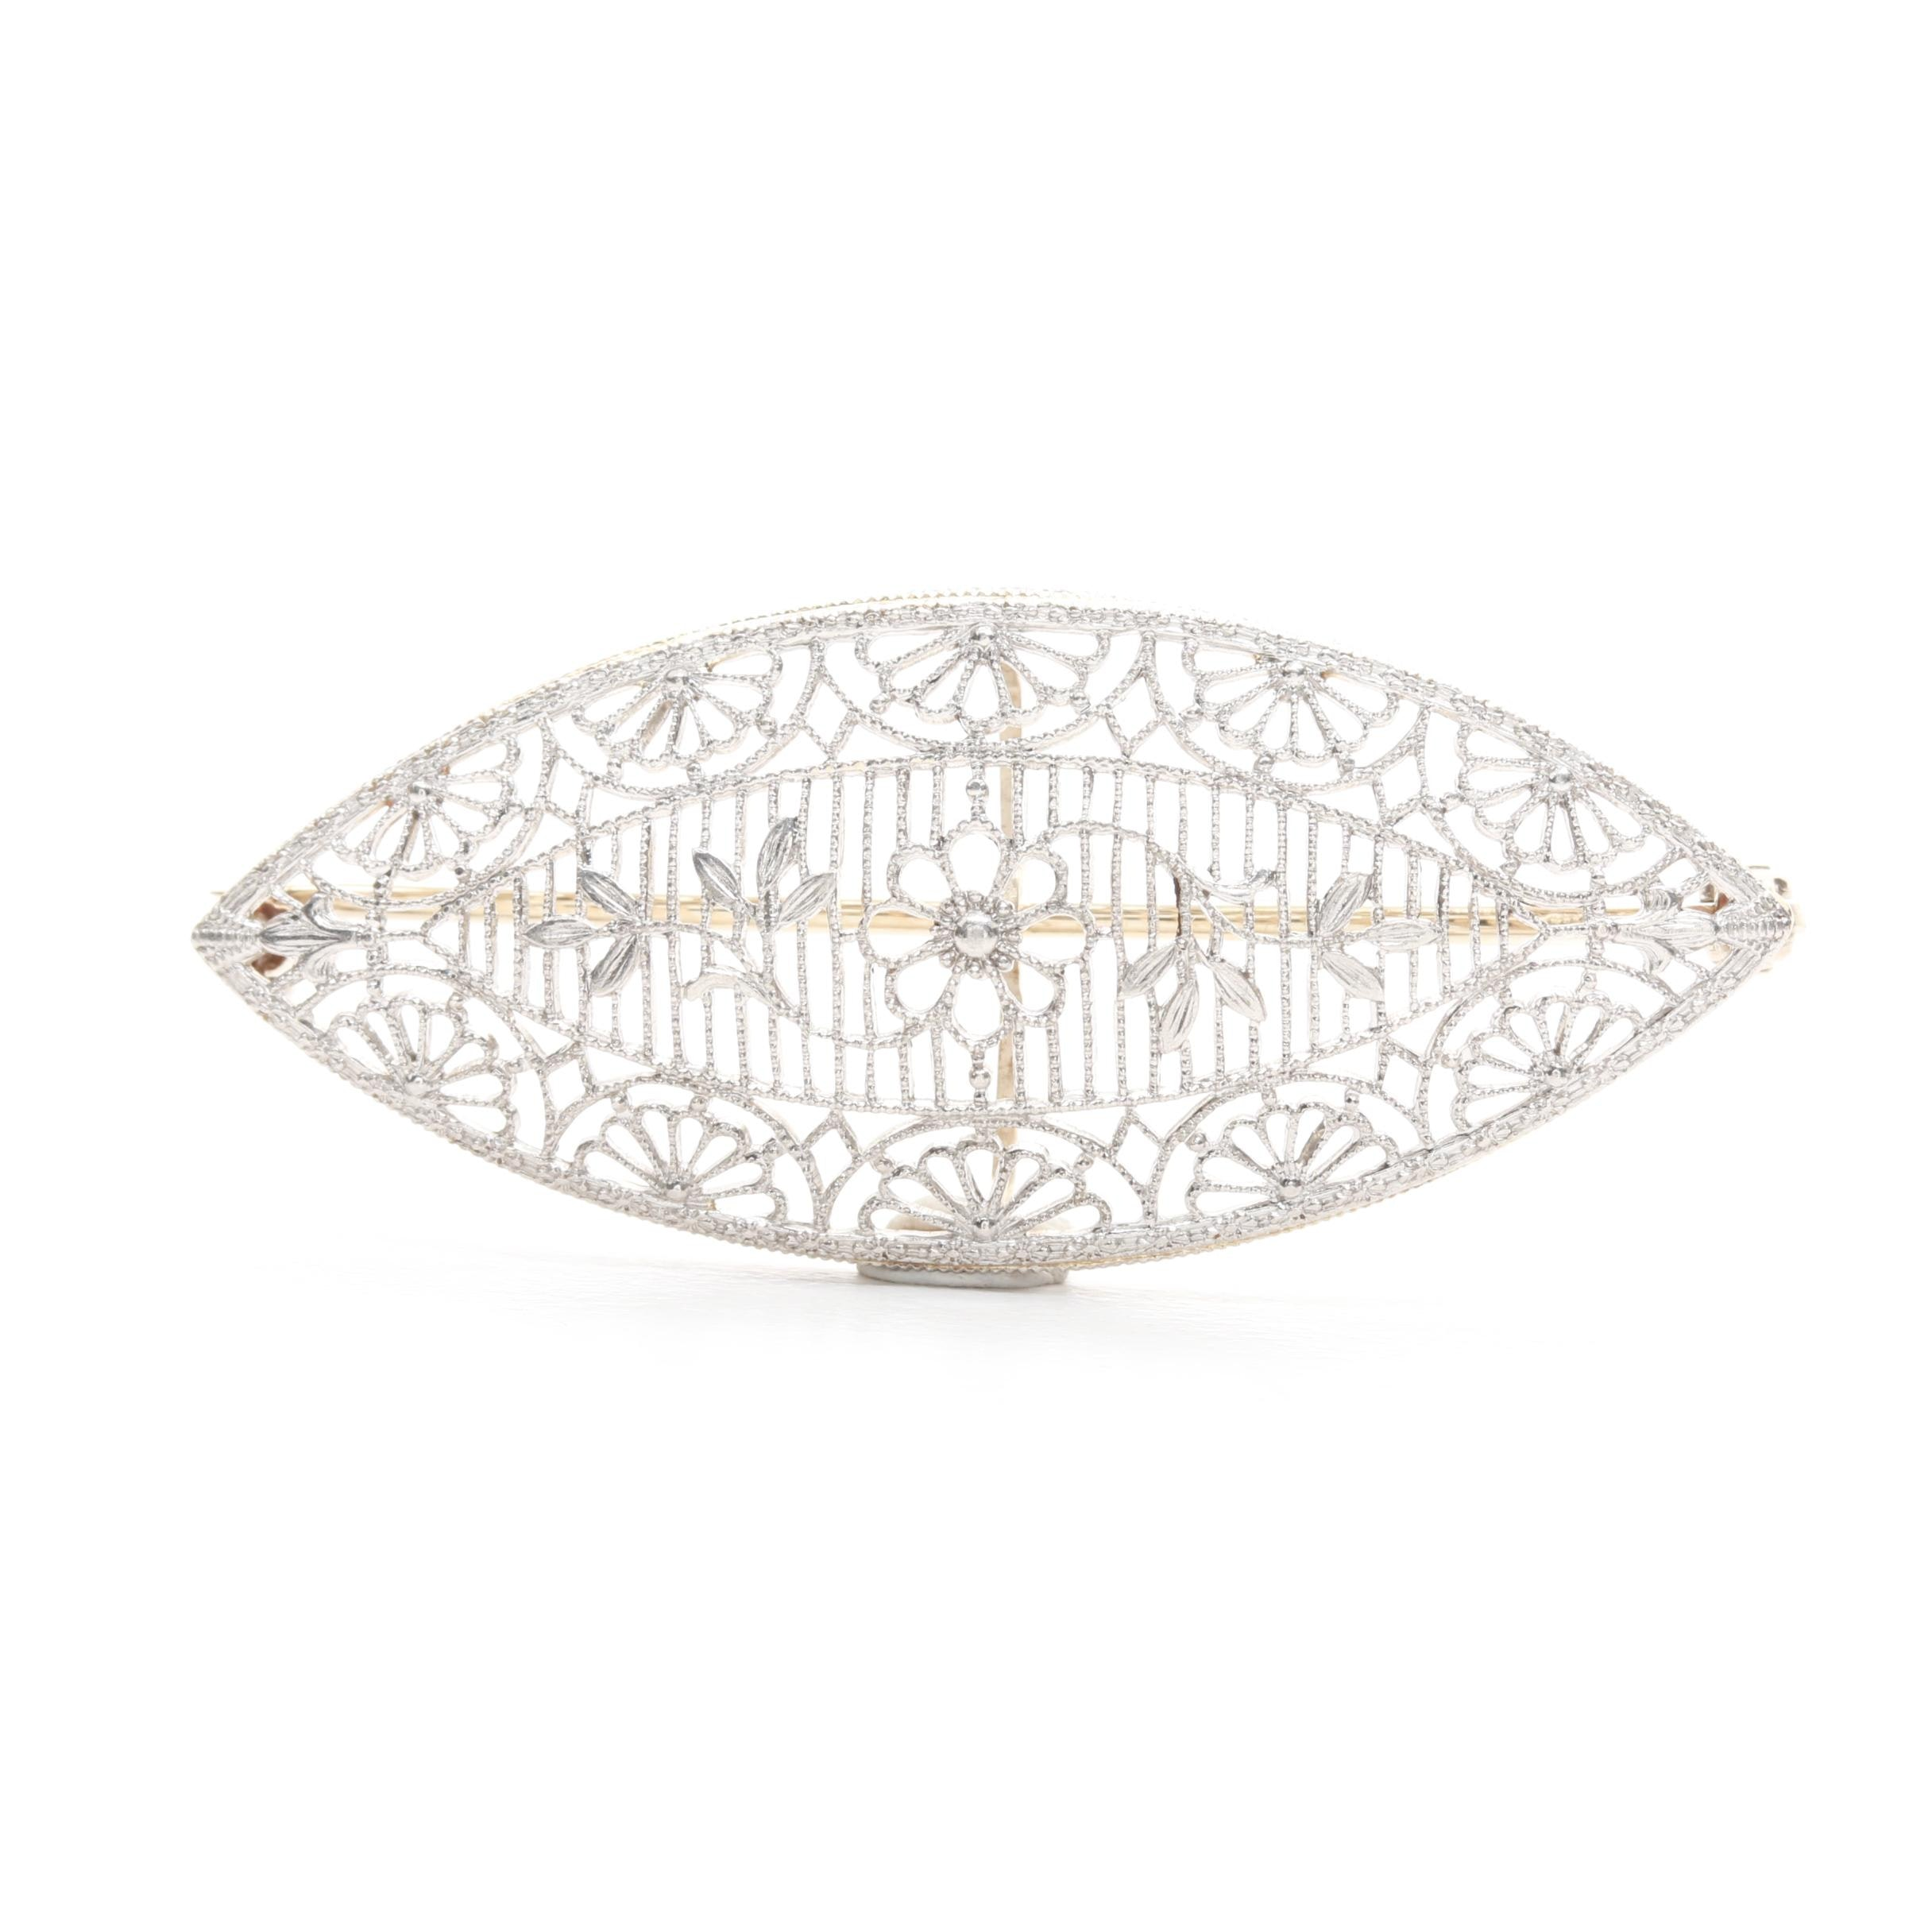 Art Deco 14K Yellow Gold and Platinum Accented Floral Openwork Brooch